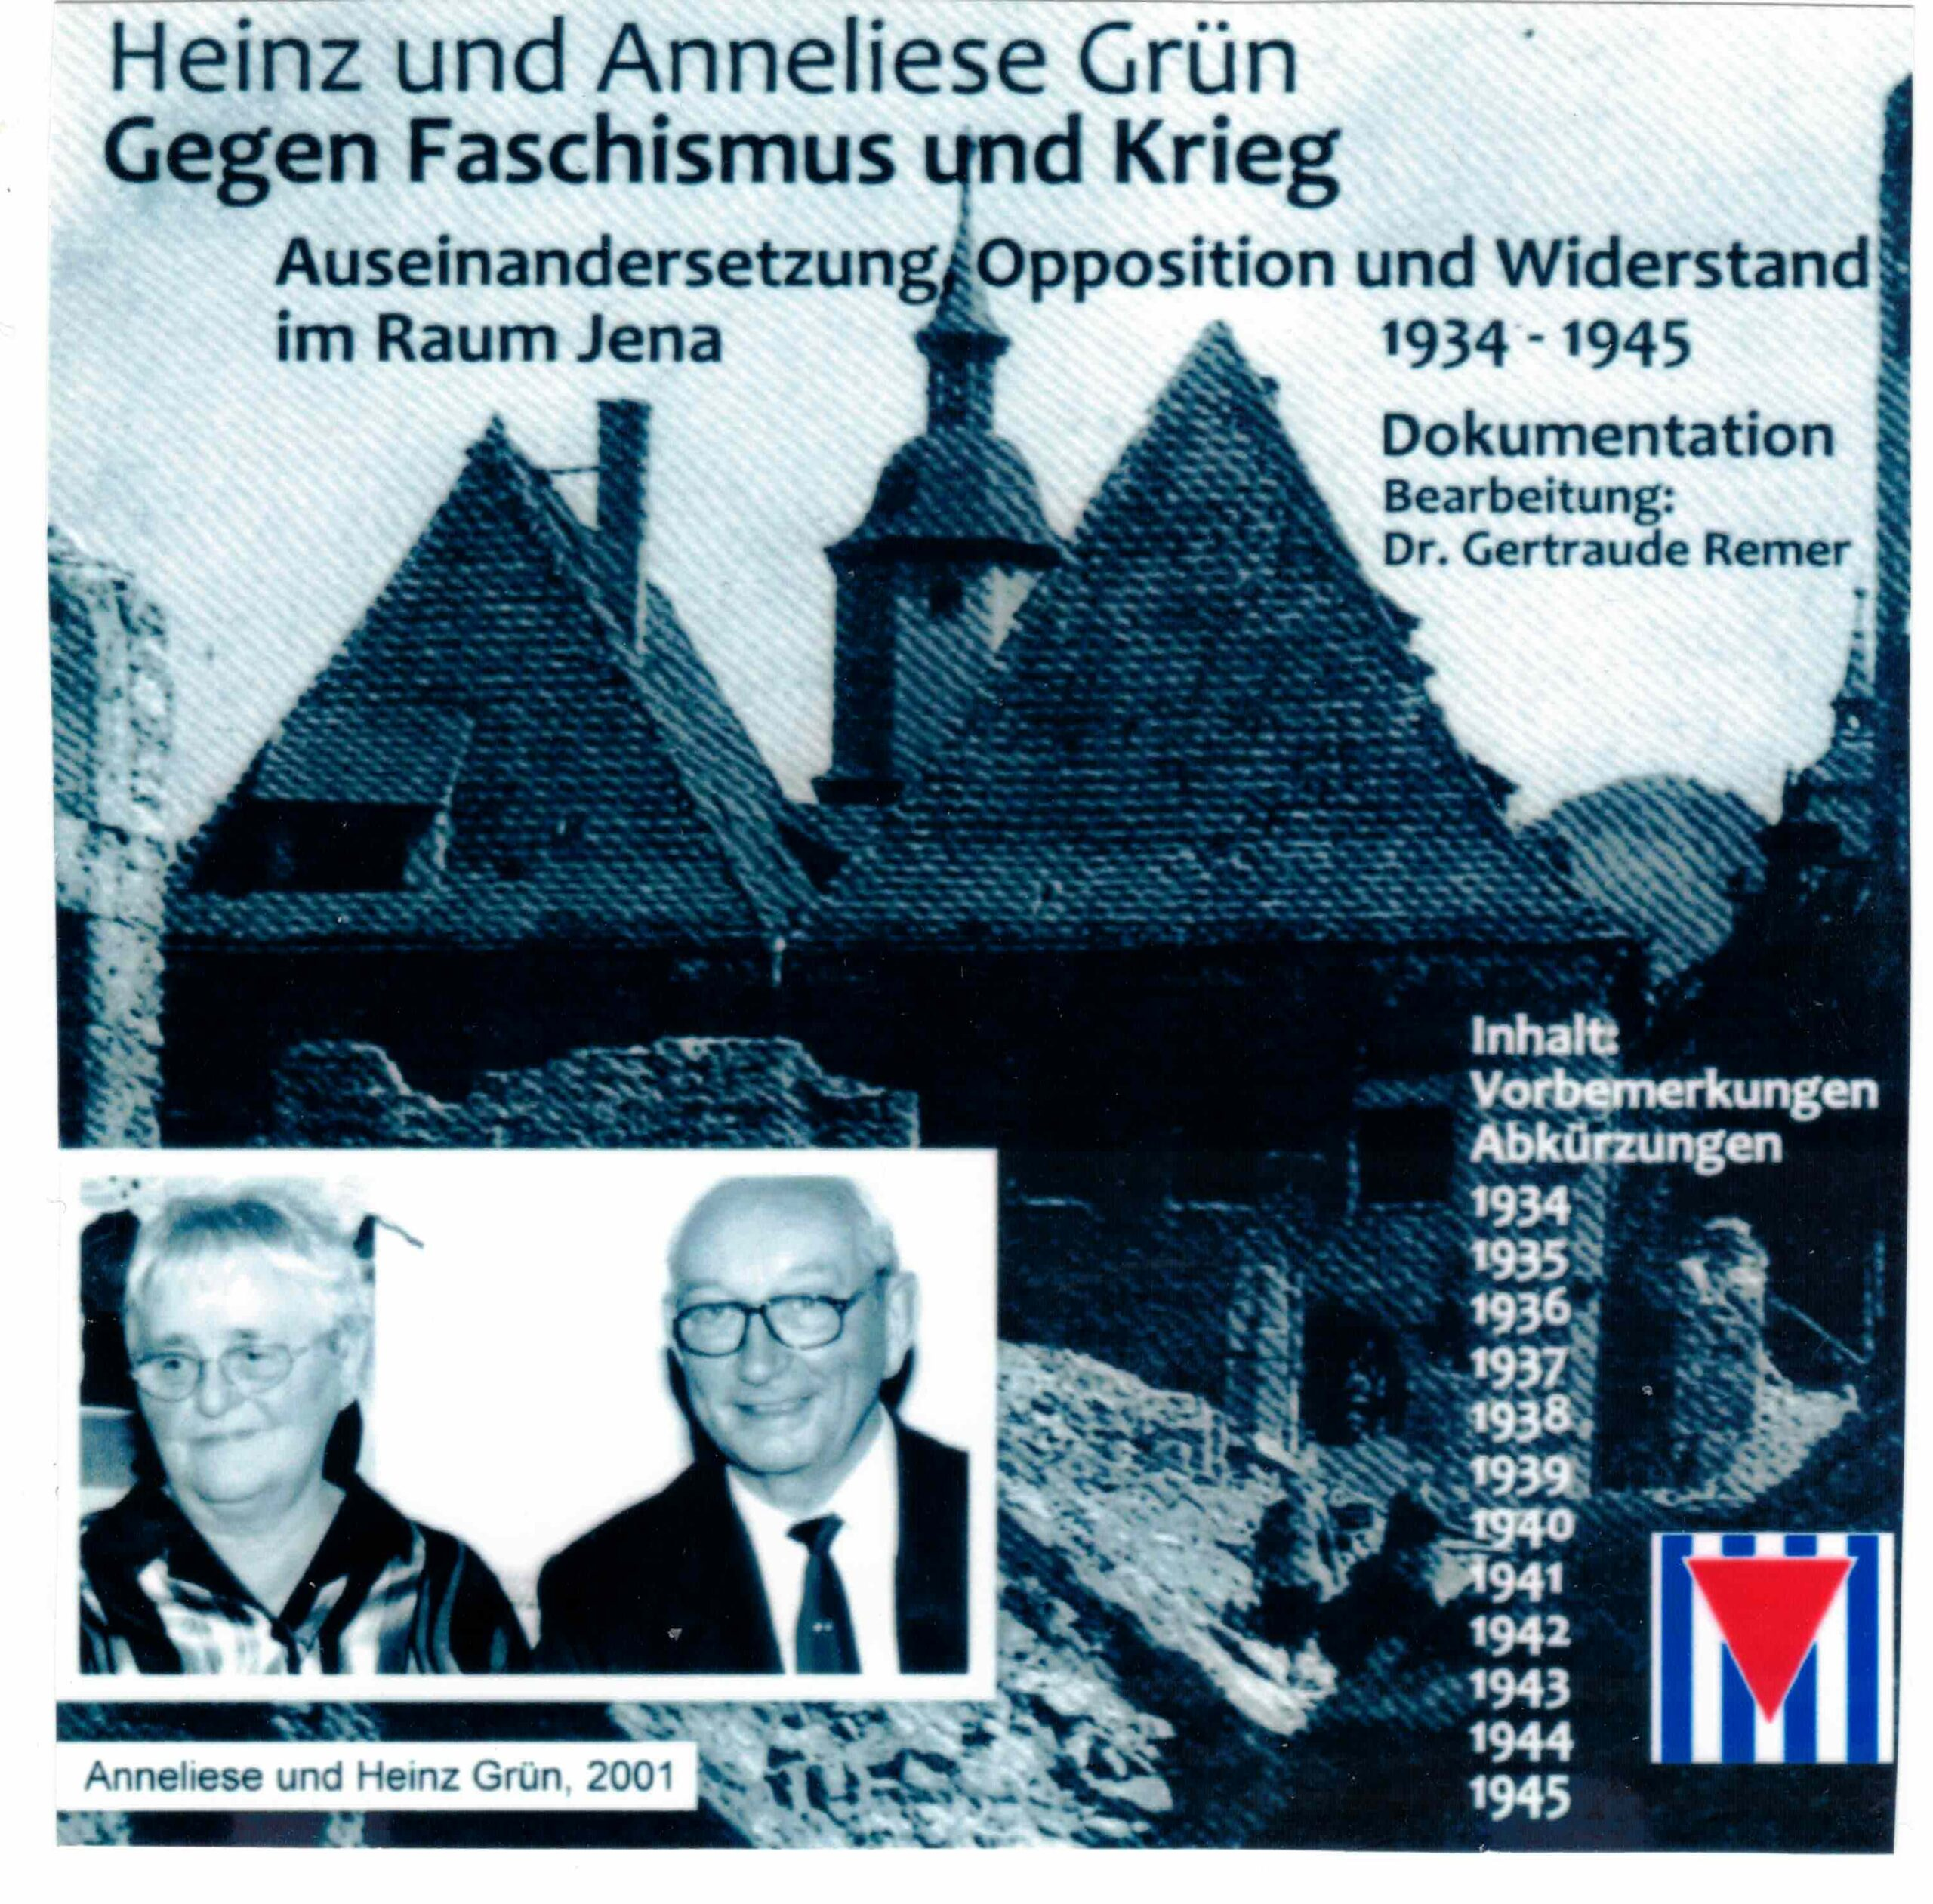 """Figure 17: ISO-Image of the CD: Grün's Documentation Against Fascism and War. """"Conflict, Opposition and Resistance in the Jena Area 1934-1945."""""""